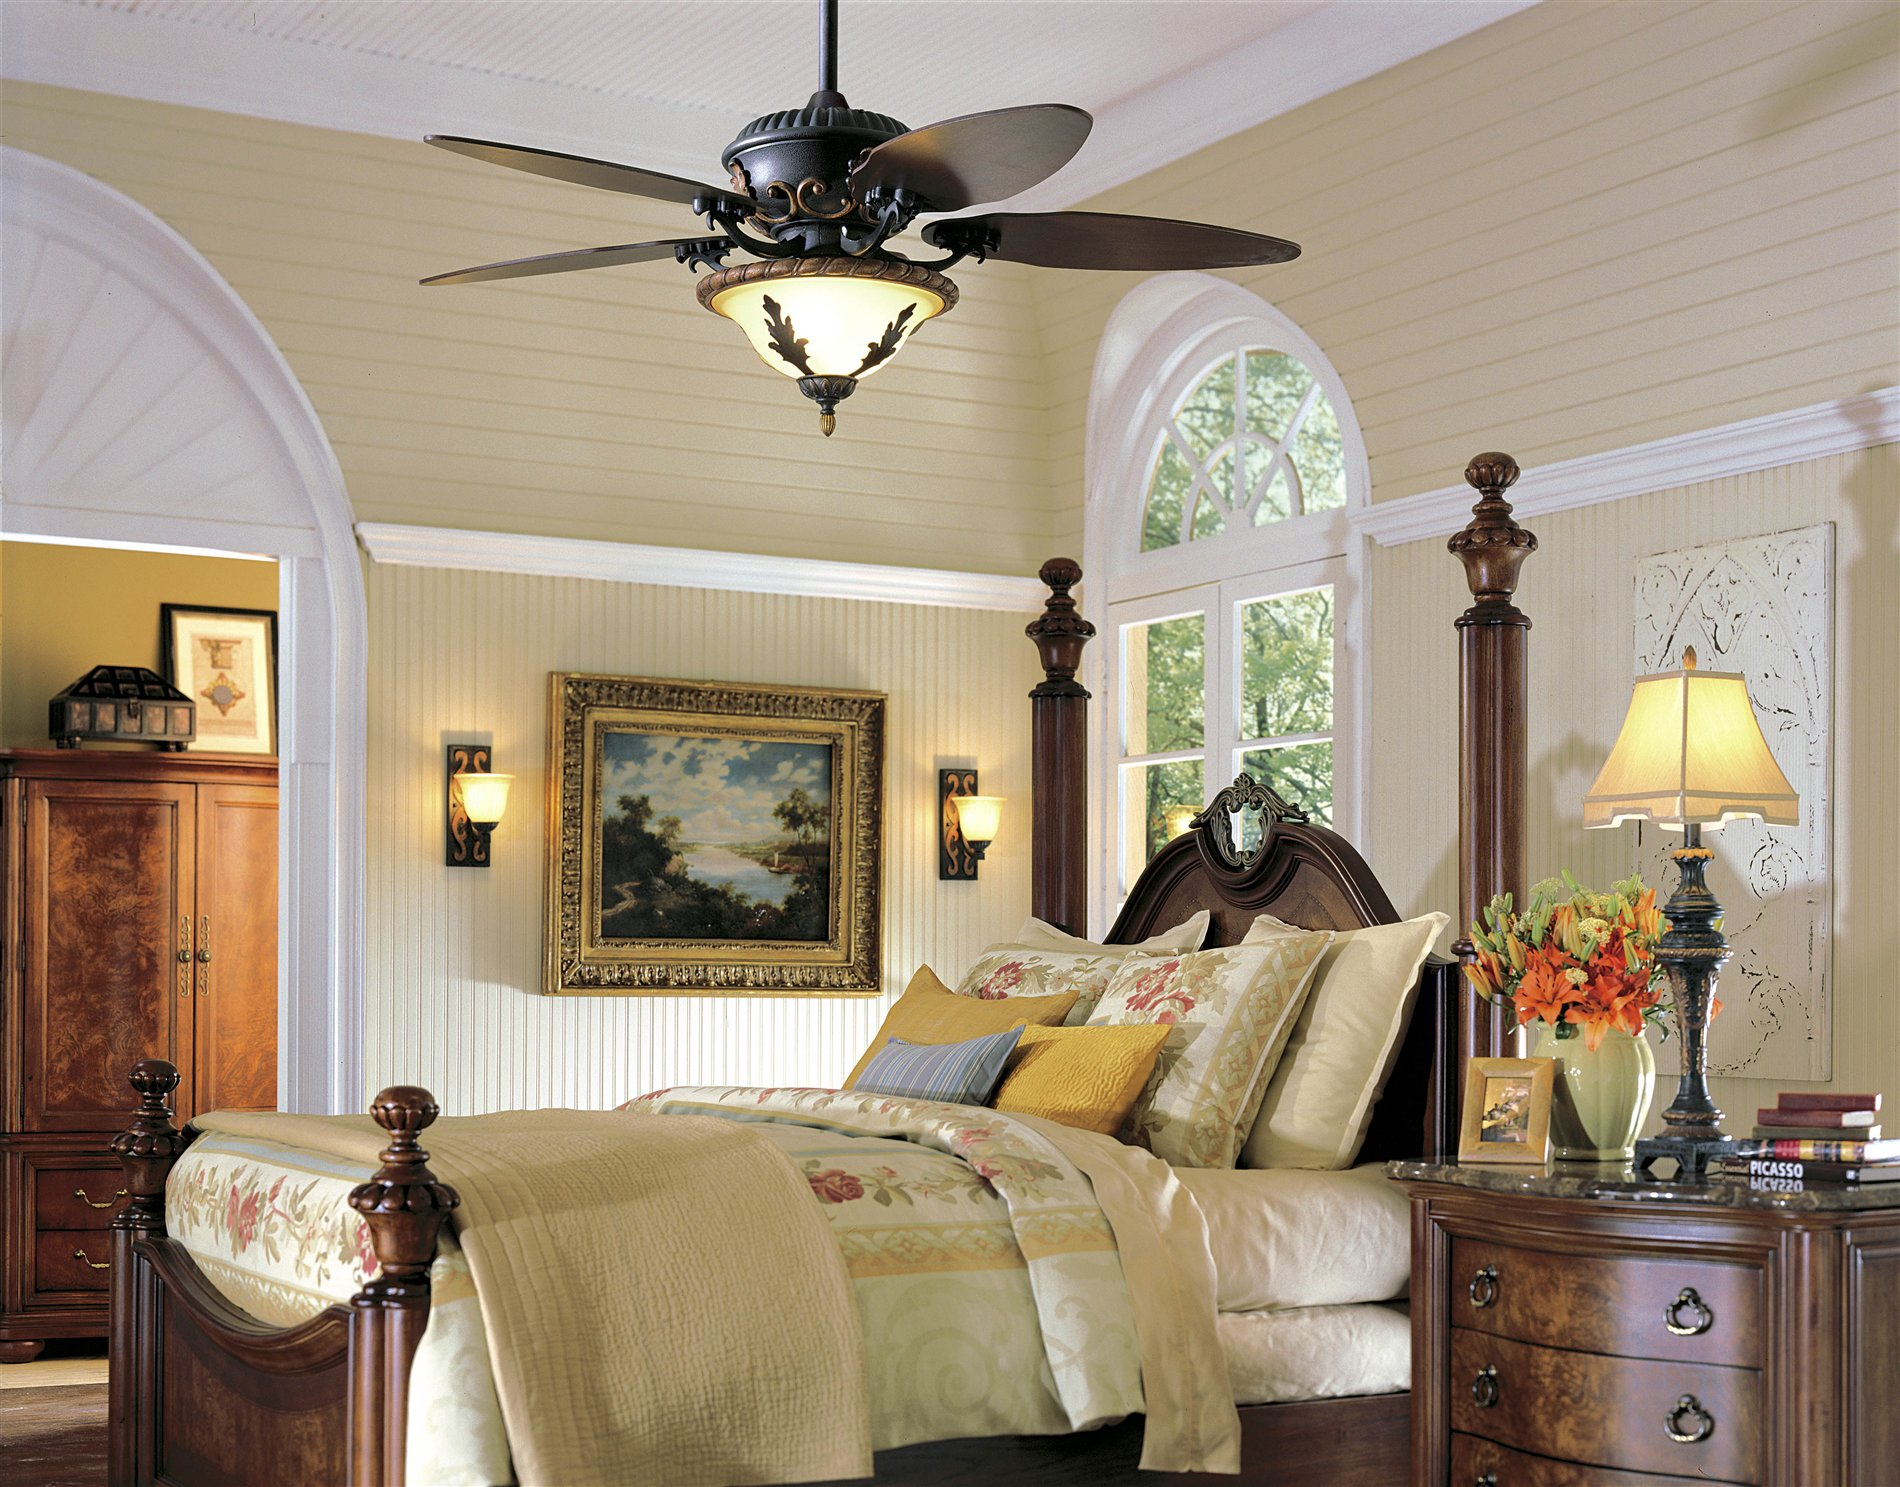 Create a cooling effect with Ceiling fan